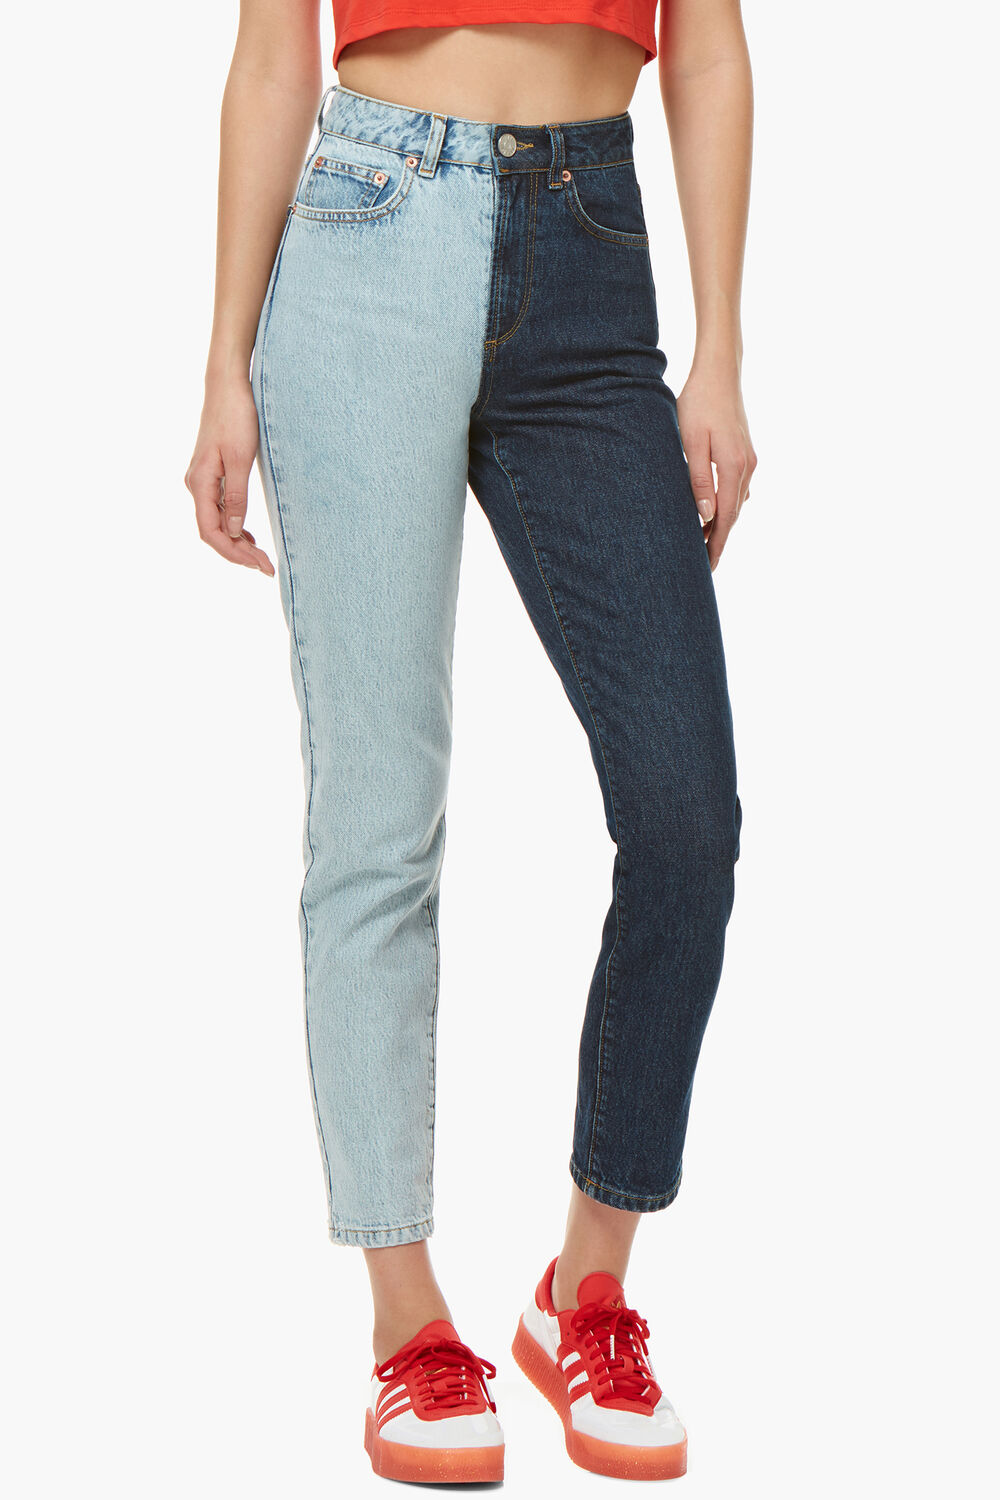 Tara Two Tone Tapered Jeans Blue